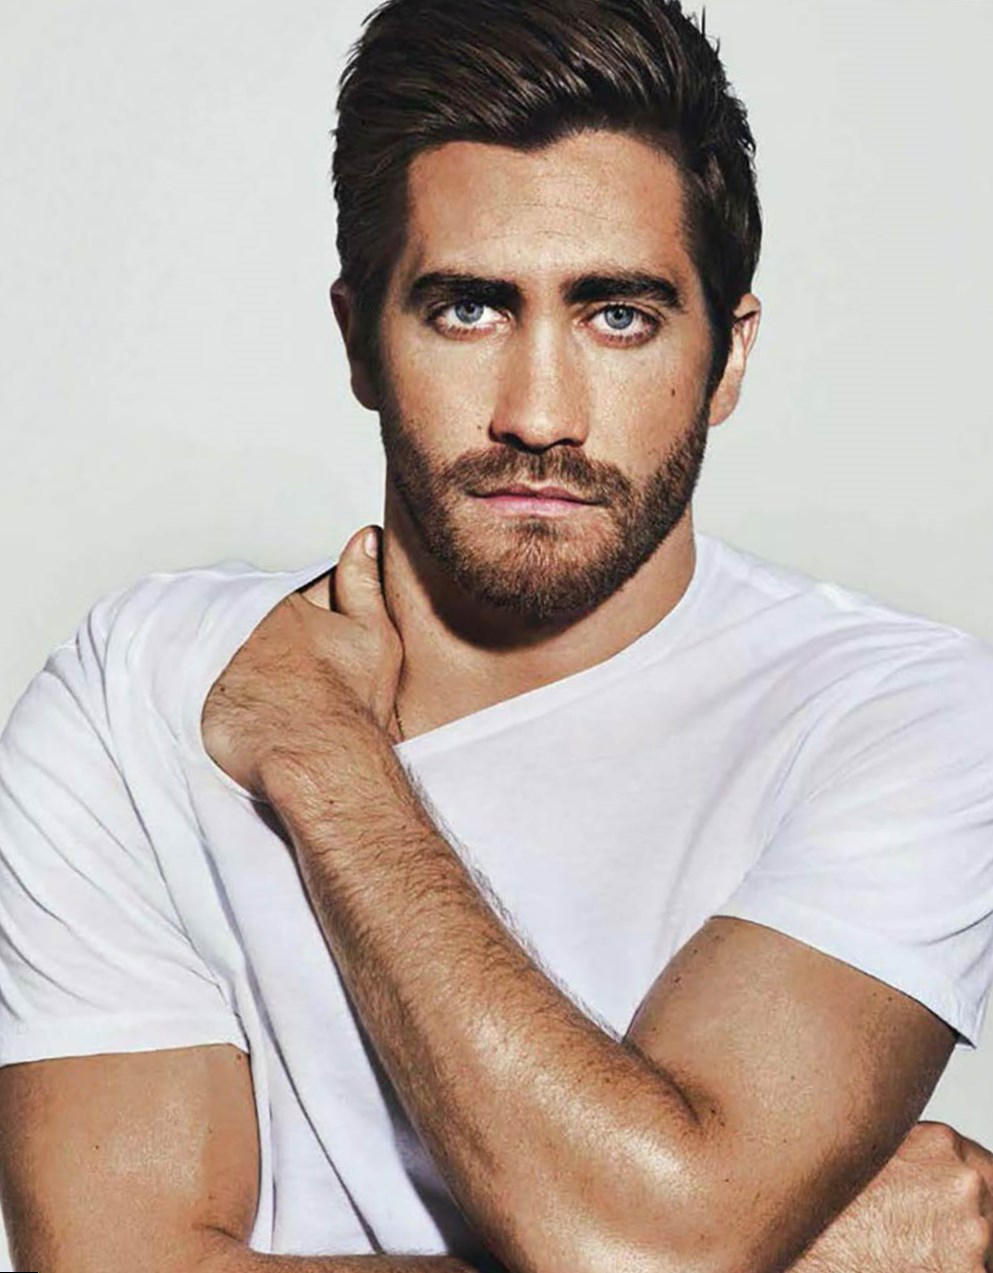 Jake Gyllenhaal is considered to be a very unique actor. He is ... Jake Gyllenhaal